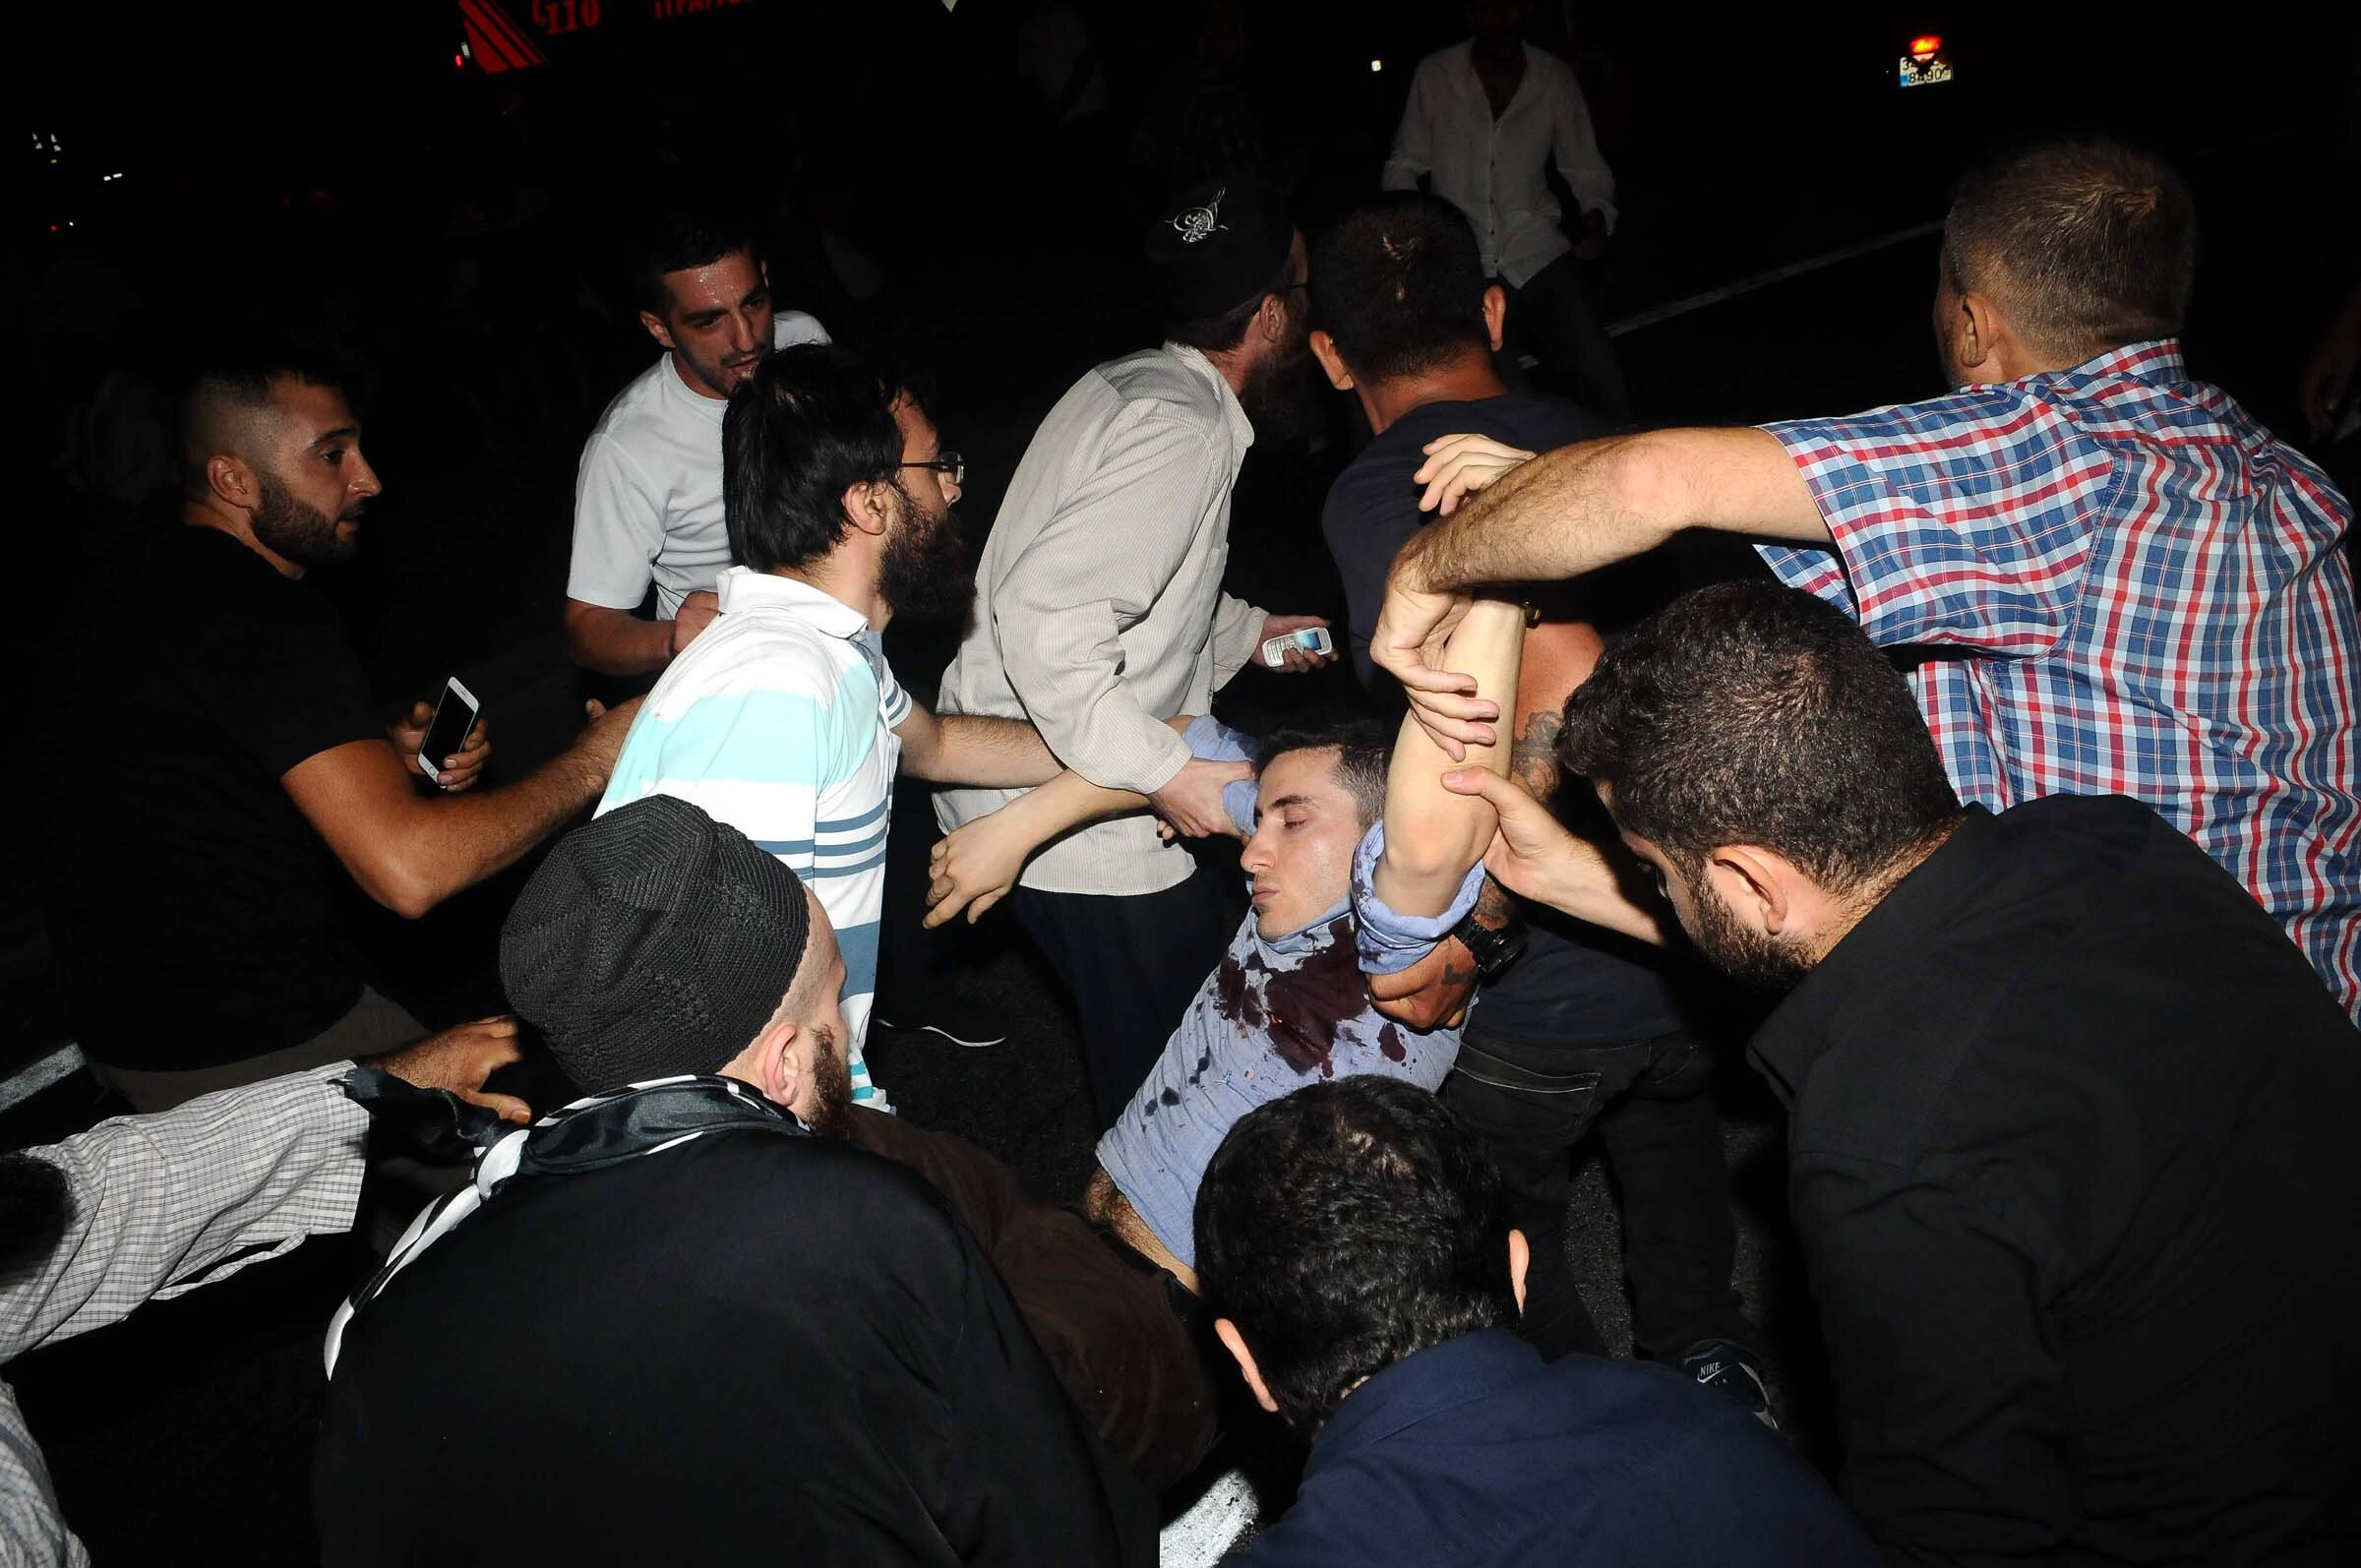 A civilian injured in gunfire is carried to an ambulance.